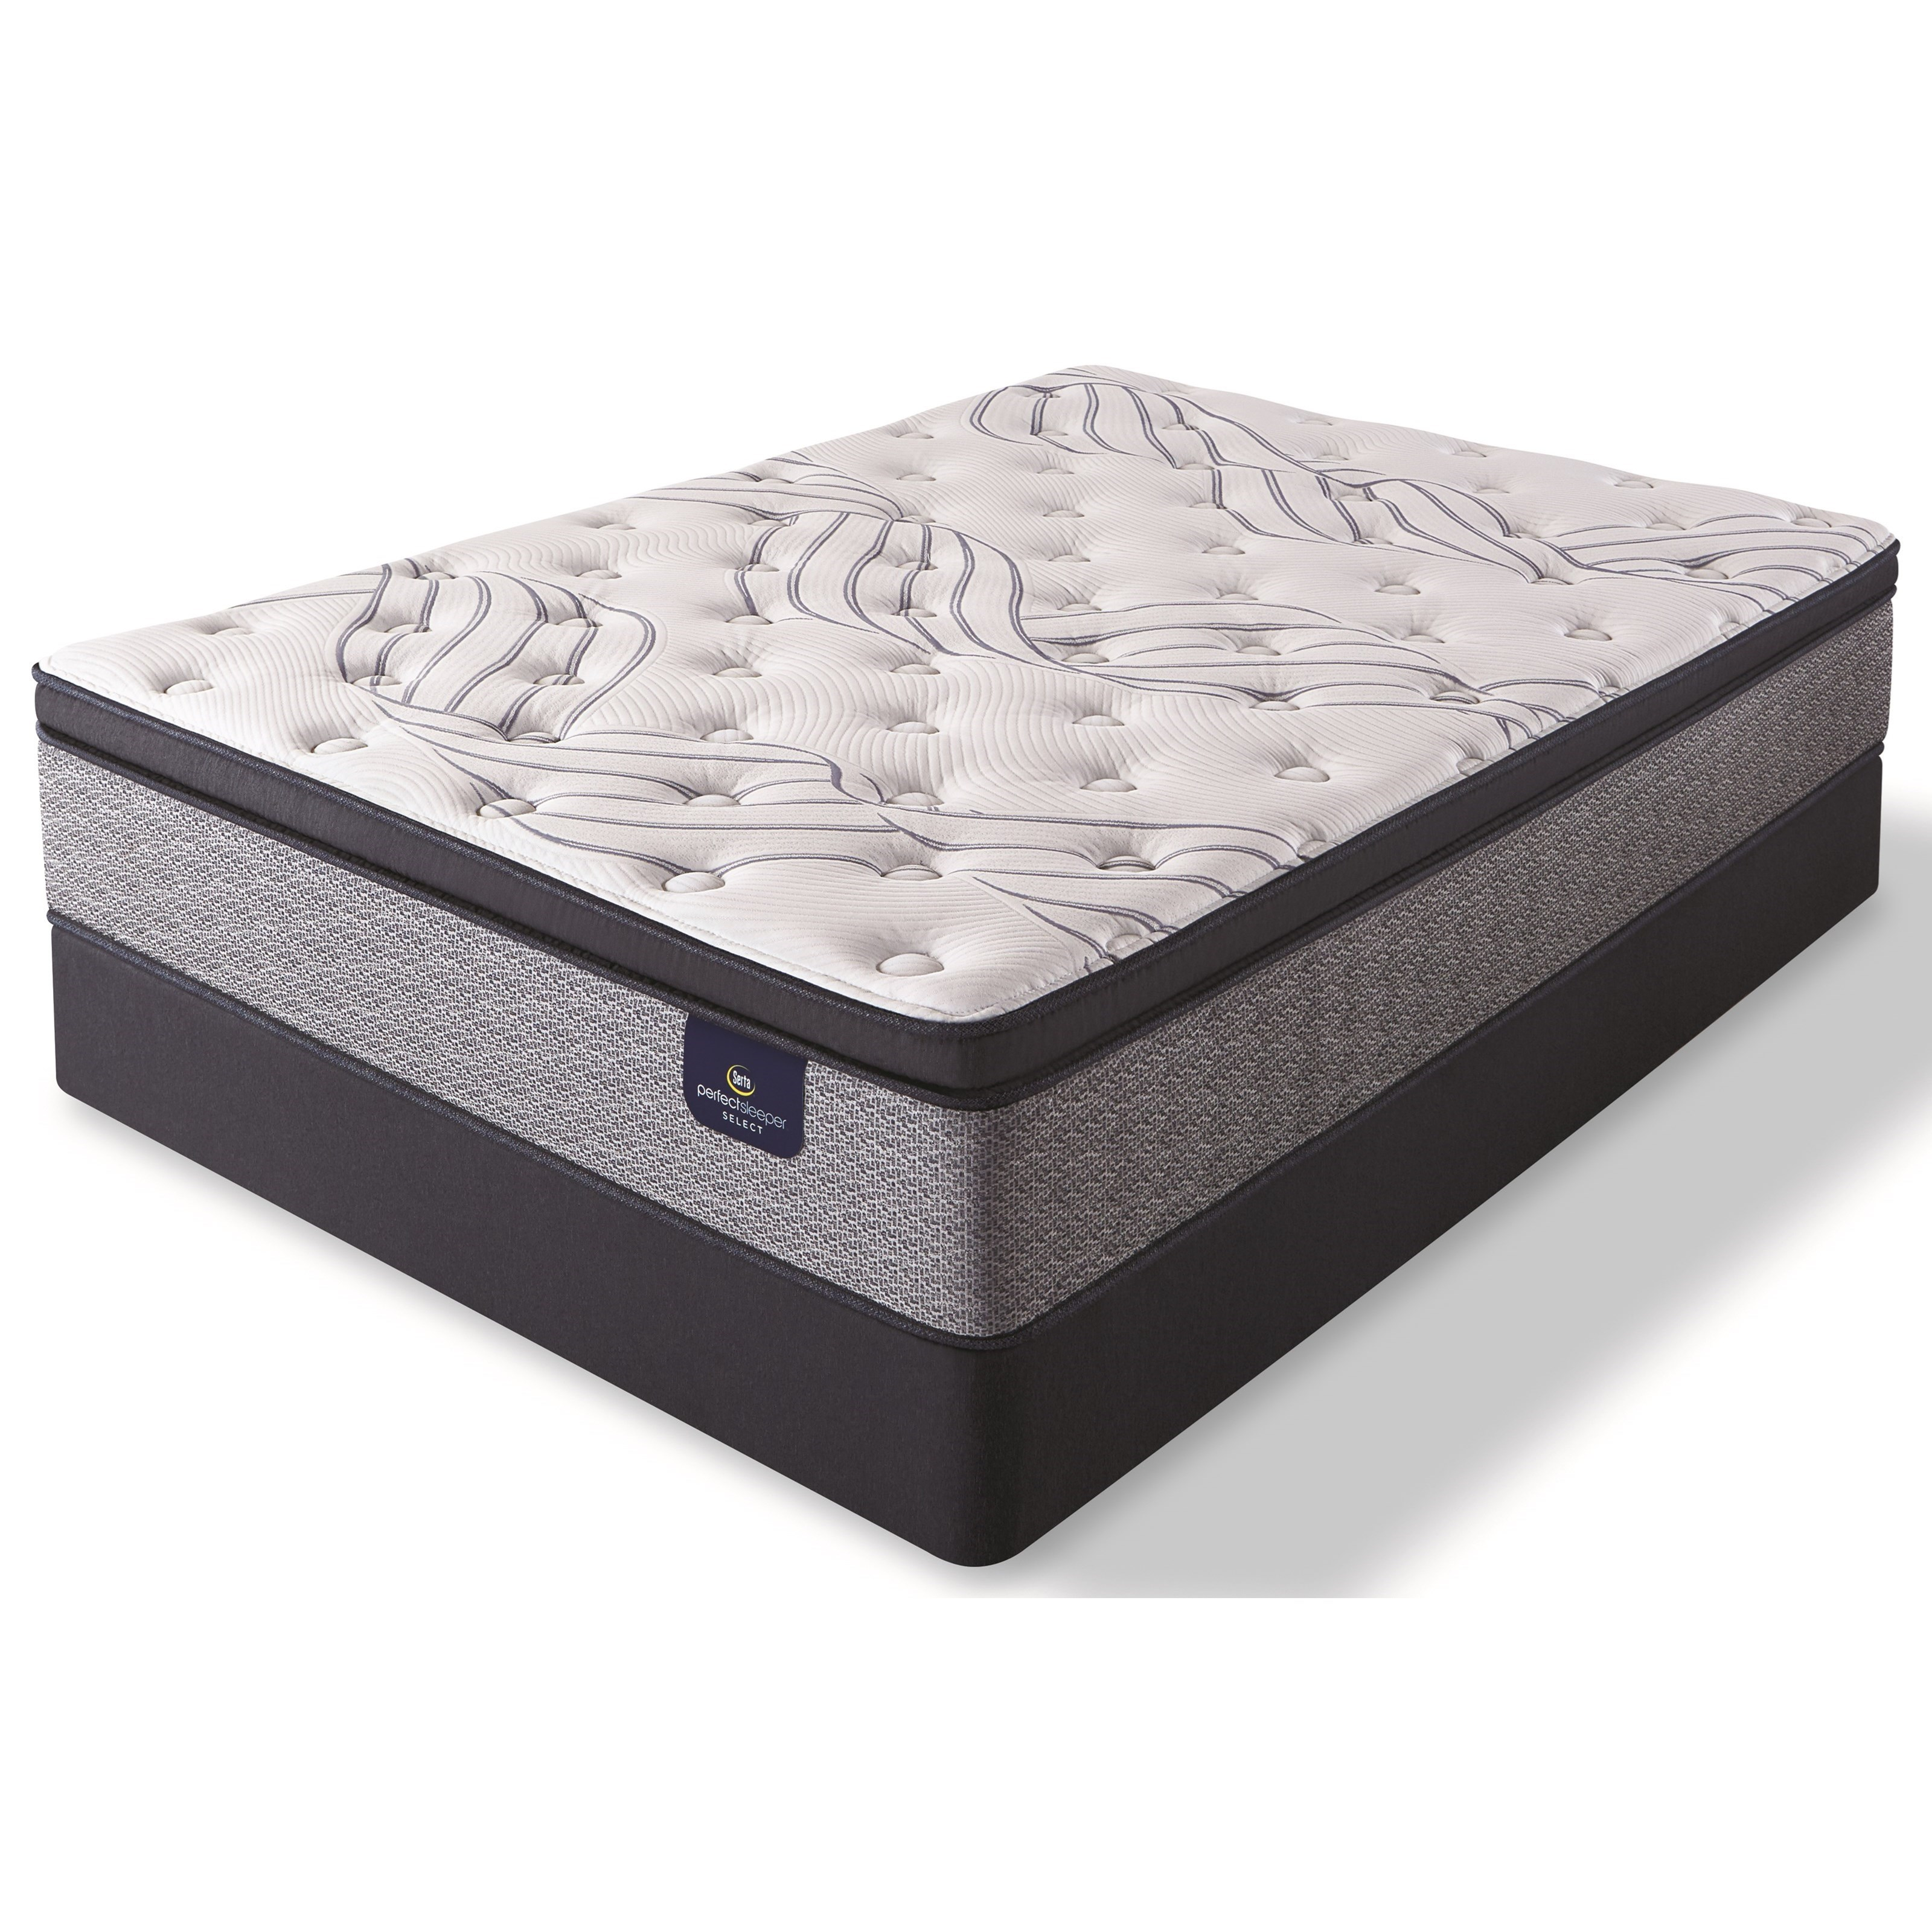 Kleinmon II Firm Pillow Top Queen Pocketed Coil Mattress Set by Serta at Darvin Furniture